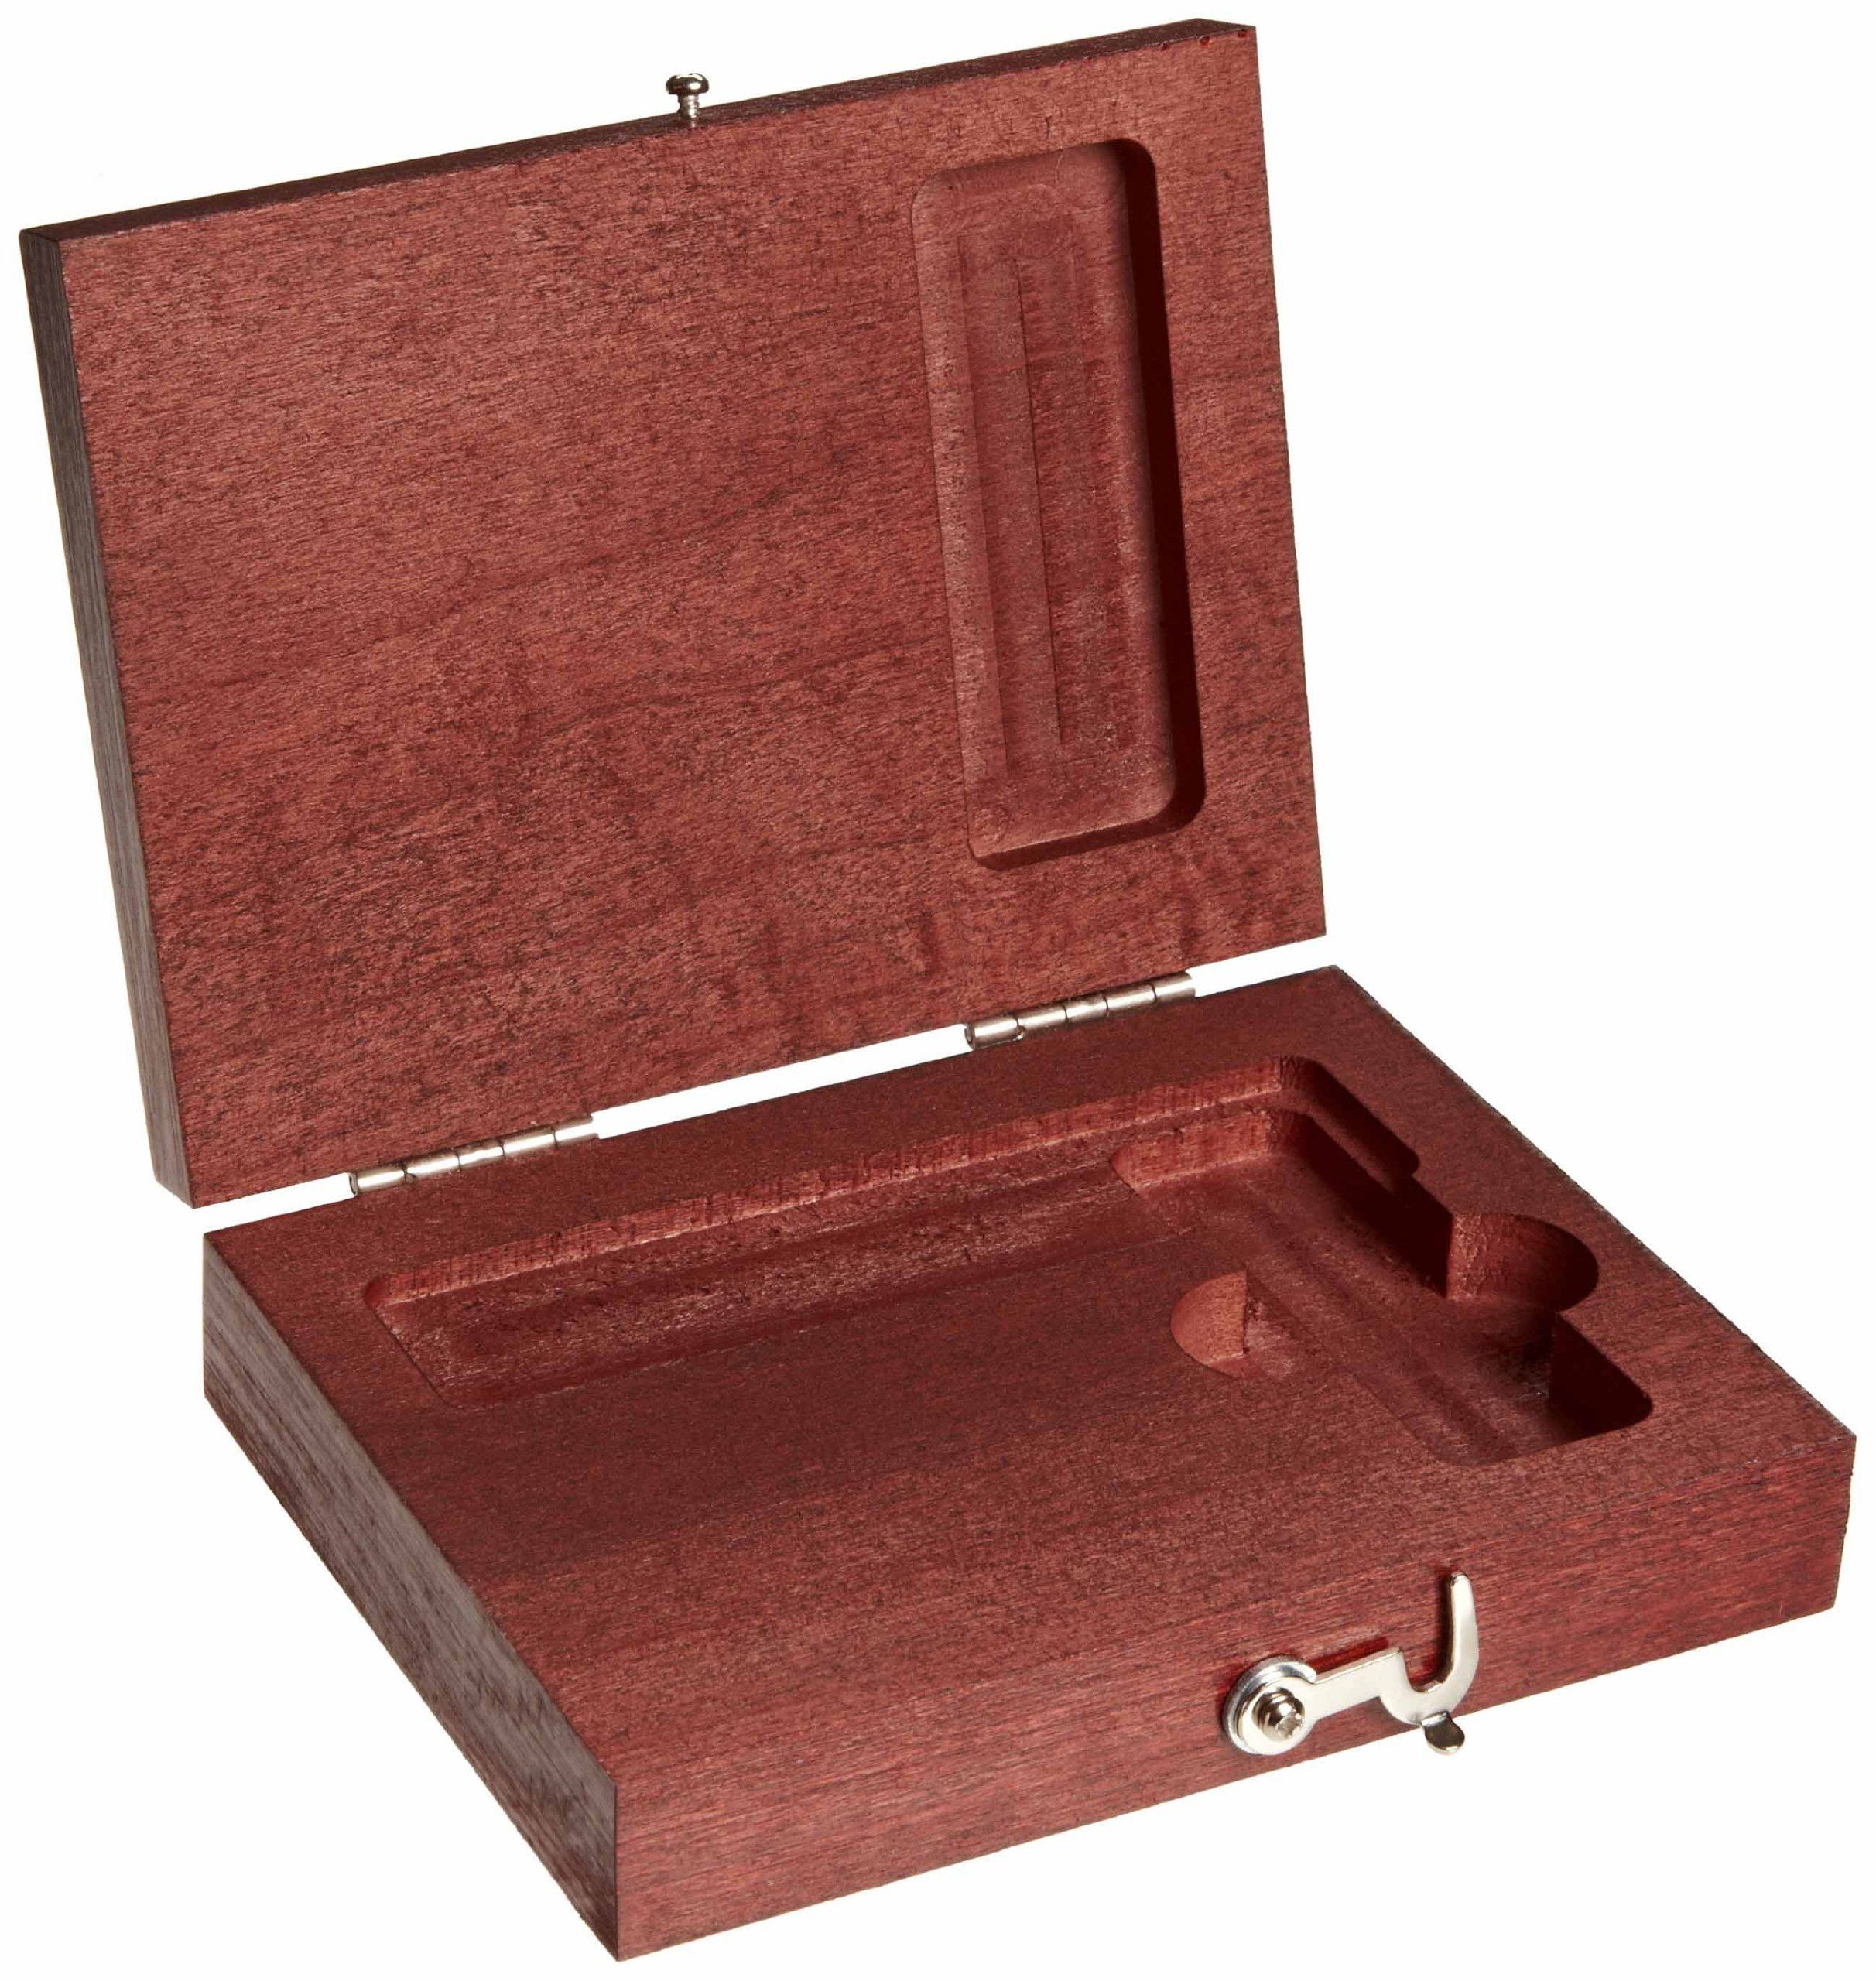 Starrett 951 Case For 20-3 Master Precision Square